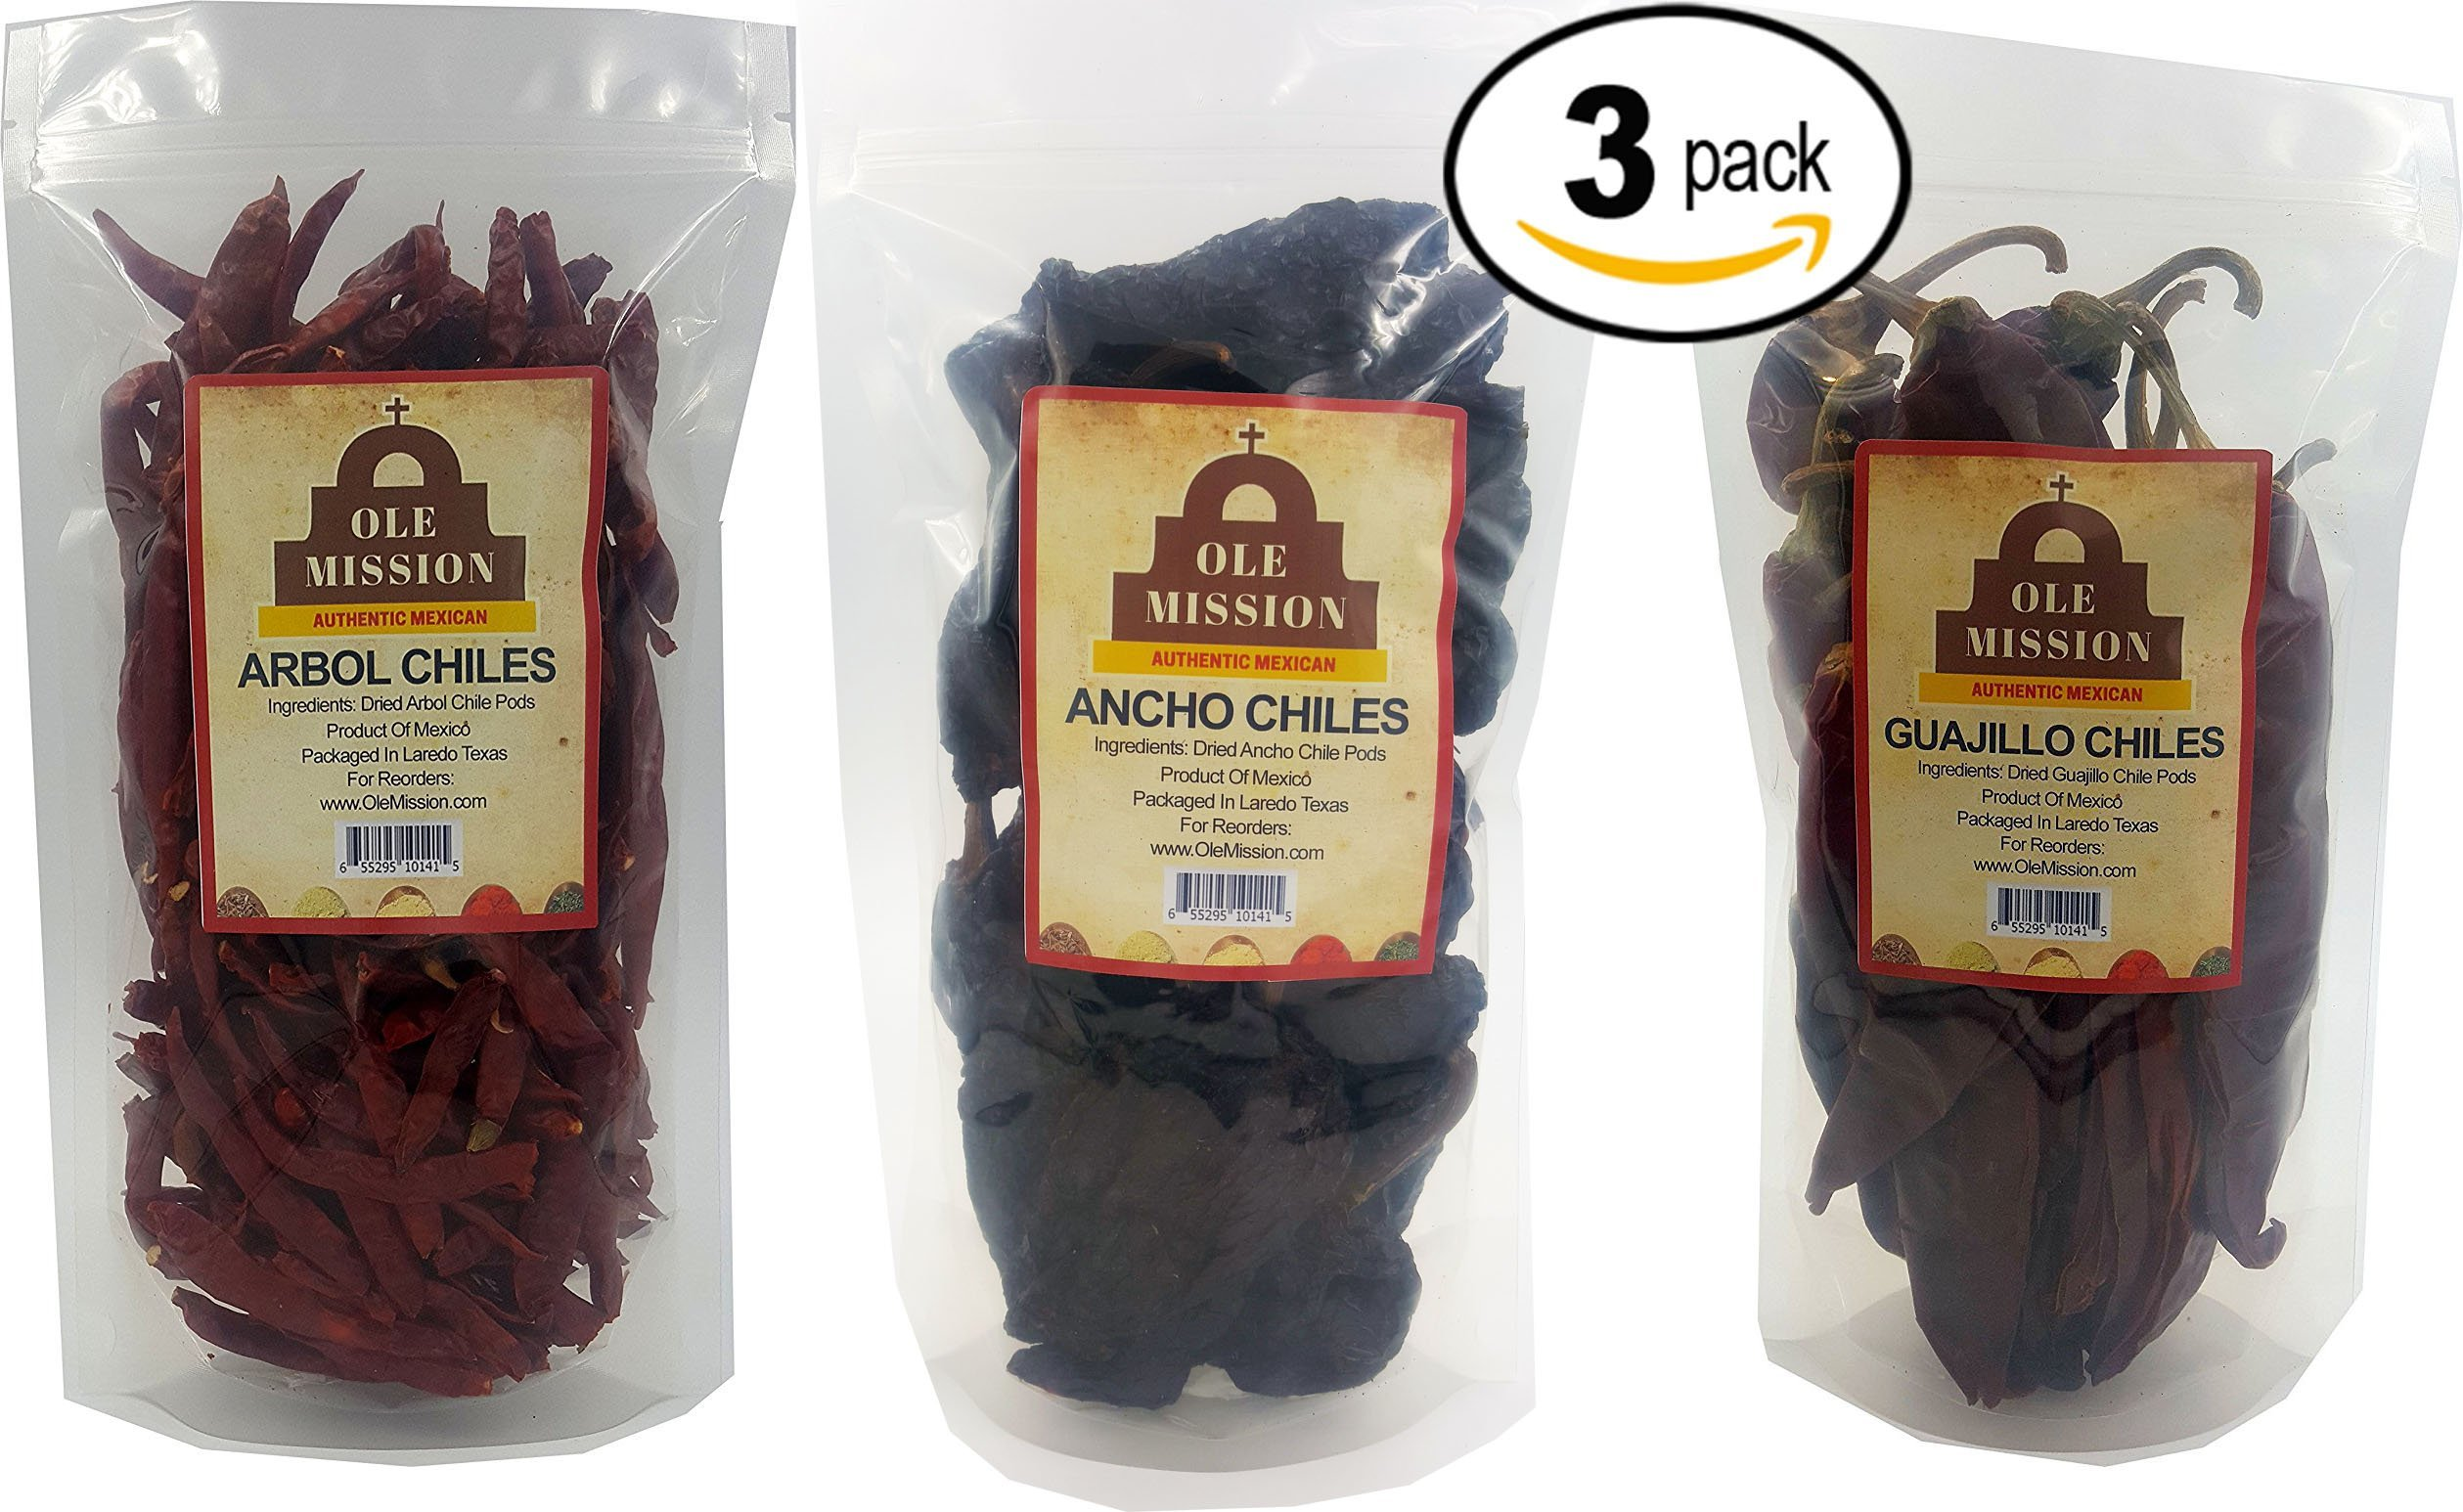 Ole Mission Dried Chili Pepper 3 Pack Bundle - Ancho, Guajillo, Arbol The Holy Trinity of Chiles 12oz Total Weight by